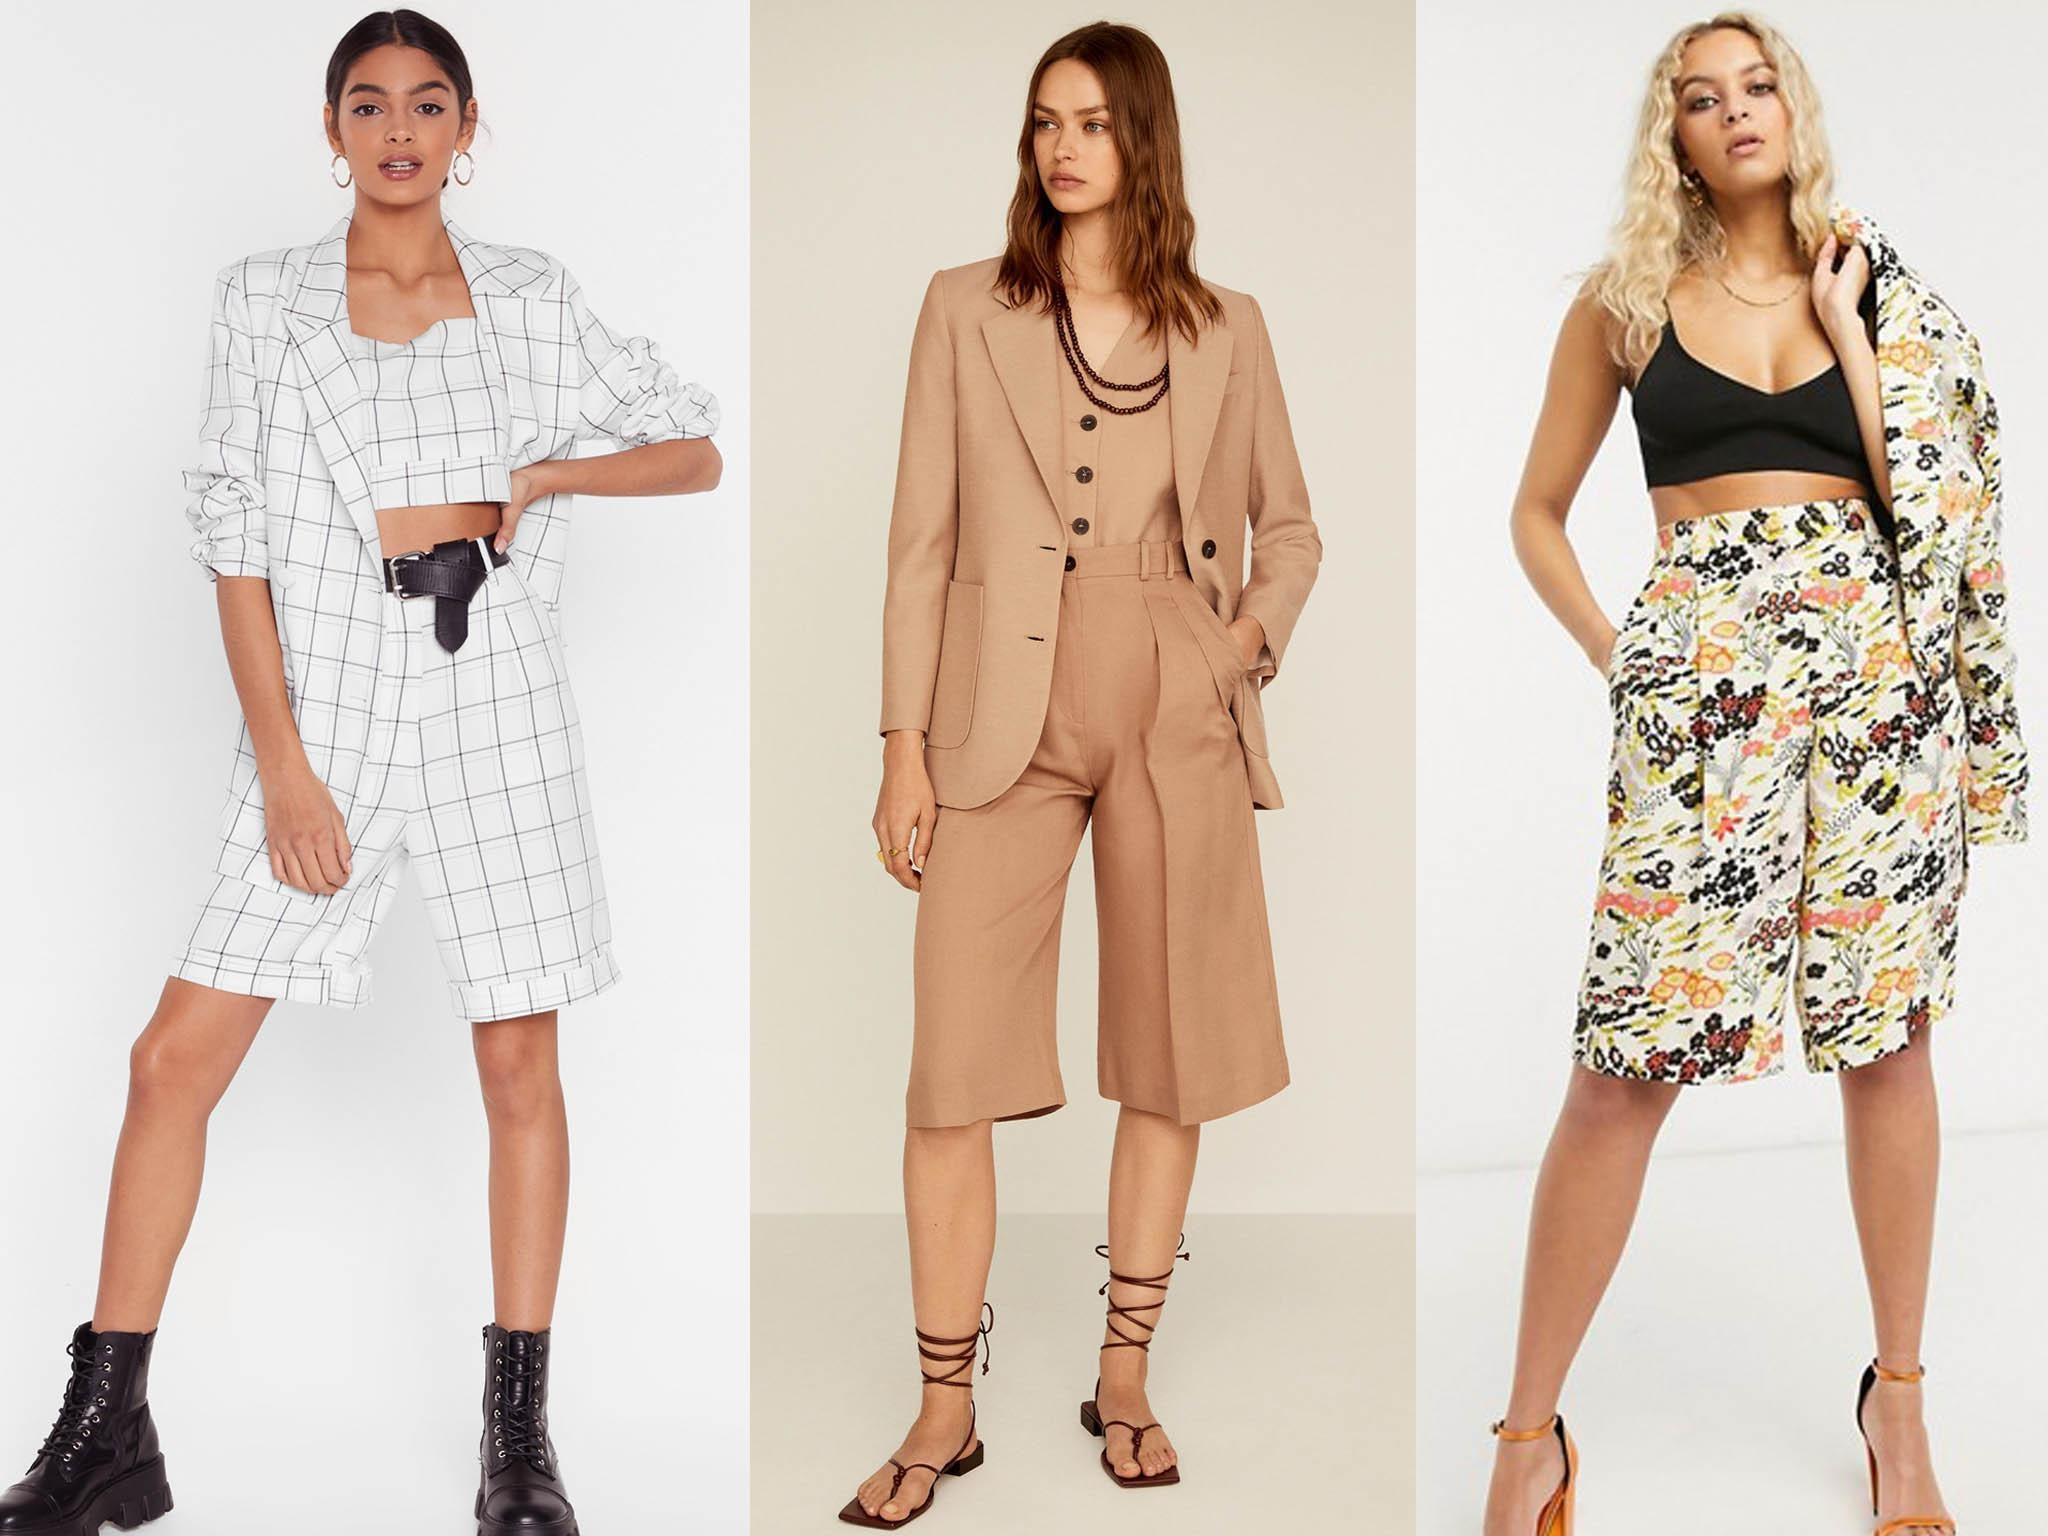 Best short suits you can look forward to wearing after quarantine